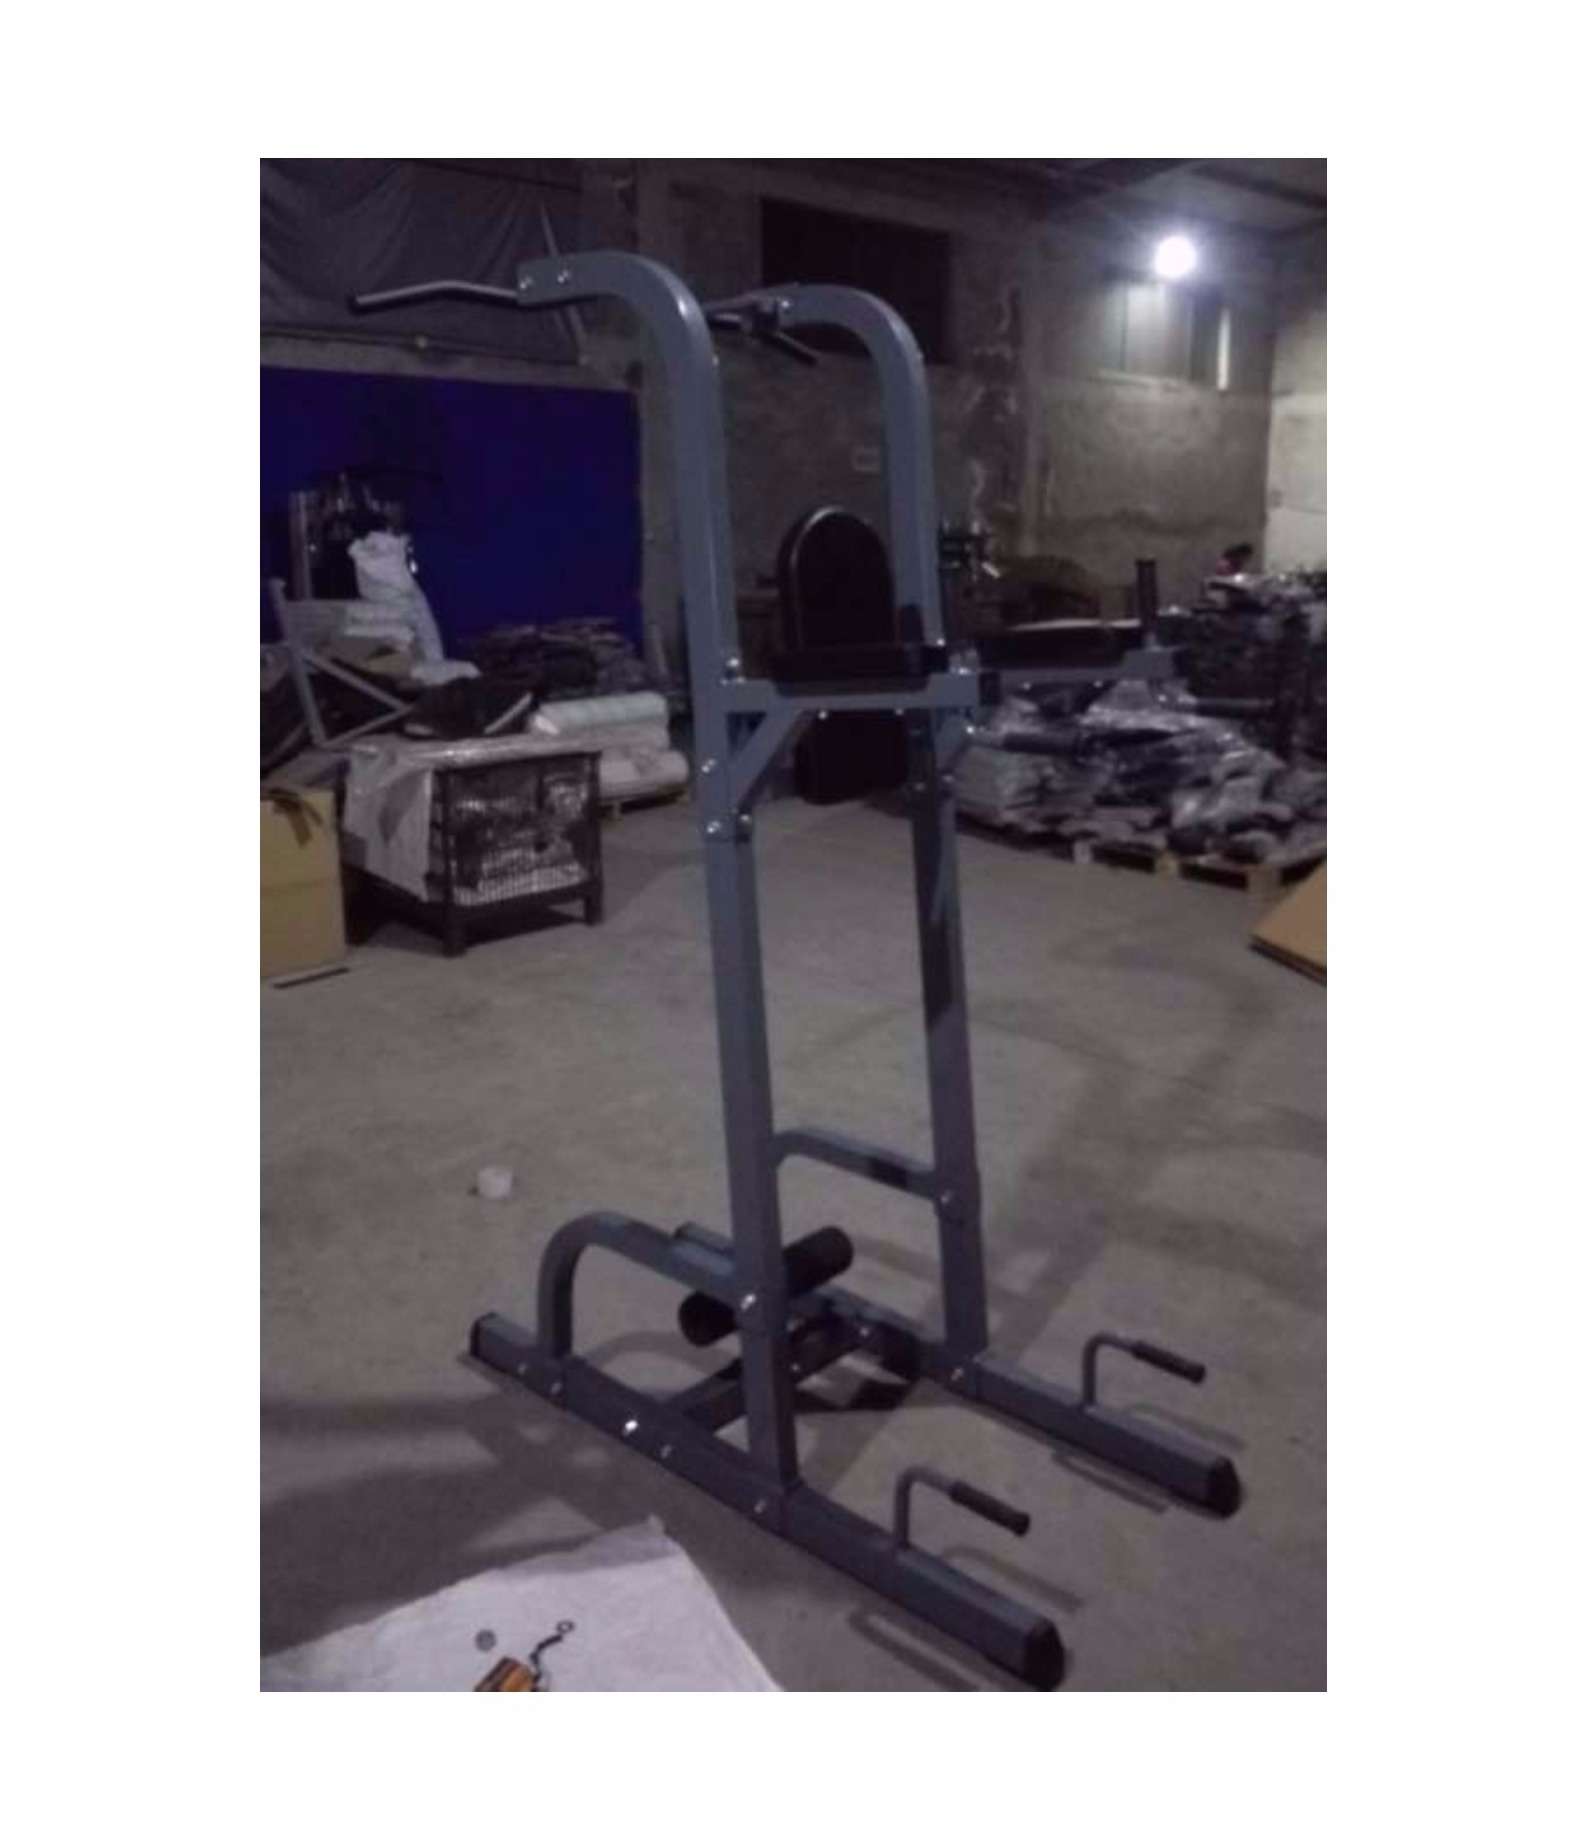 chair gym commercial world market chairs outdoor captain 39s fitness equipment ireland best for